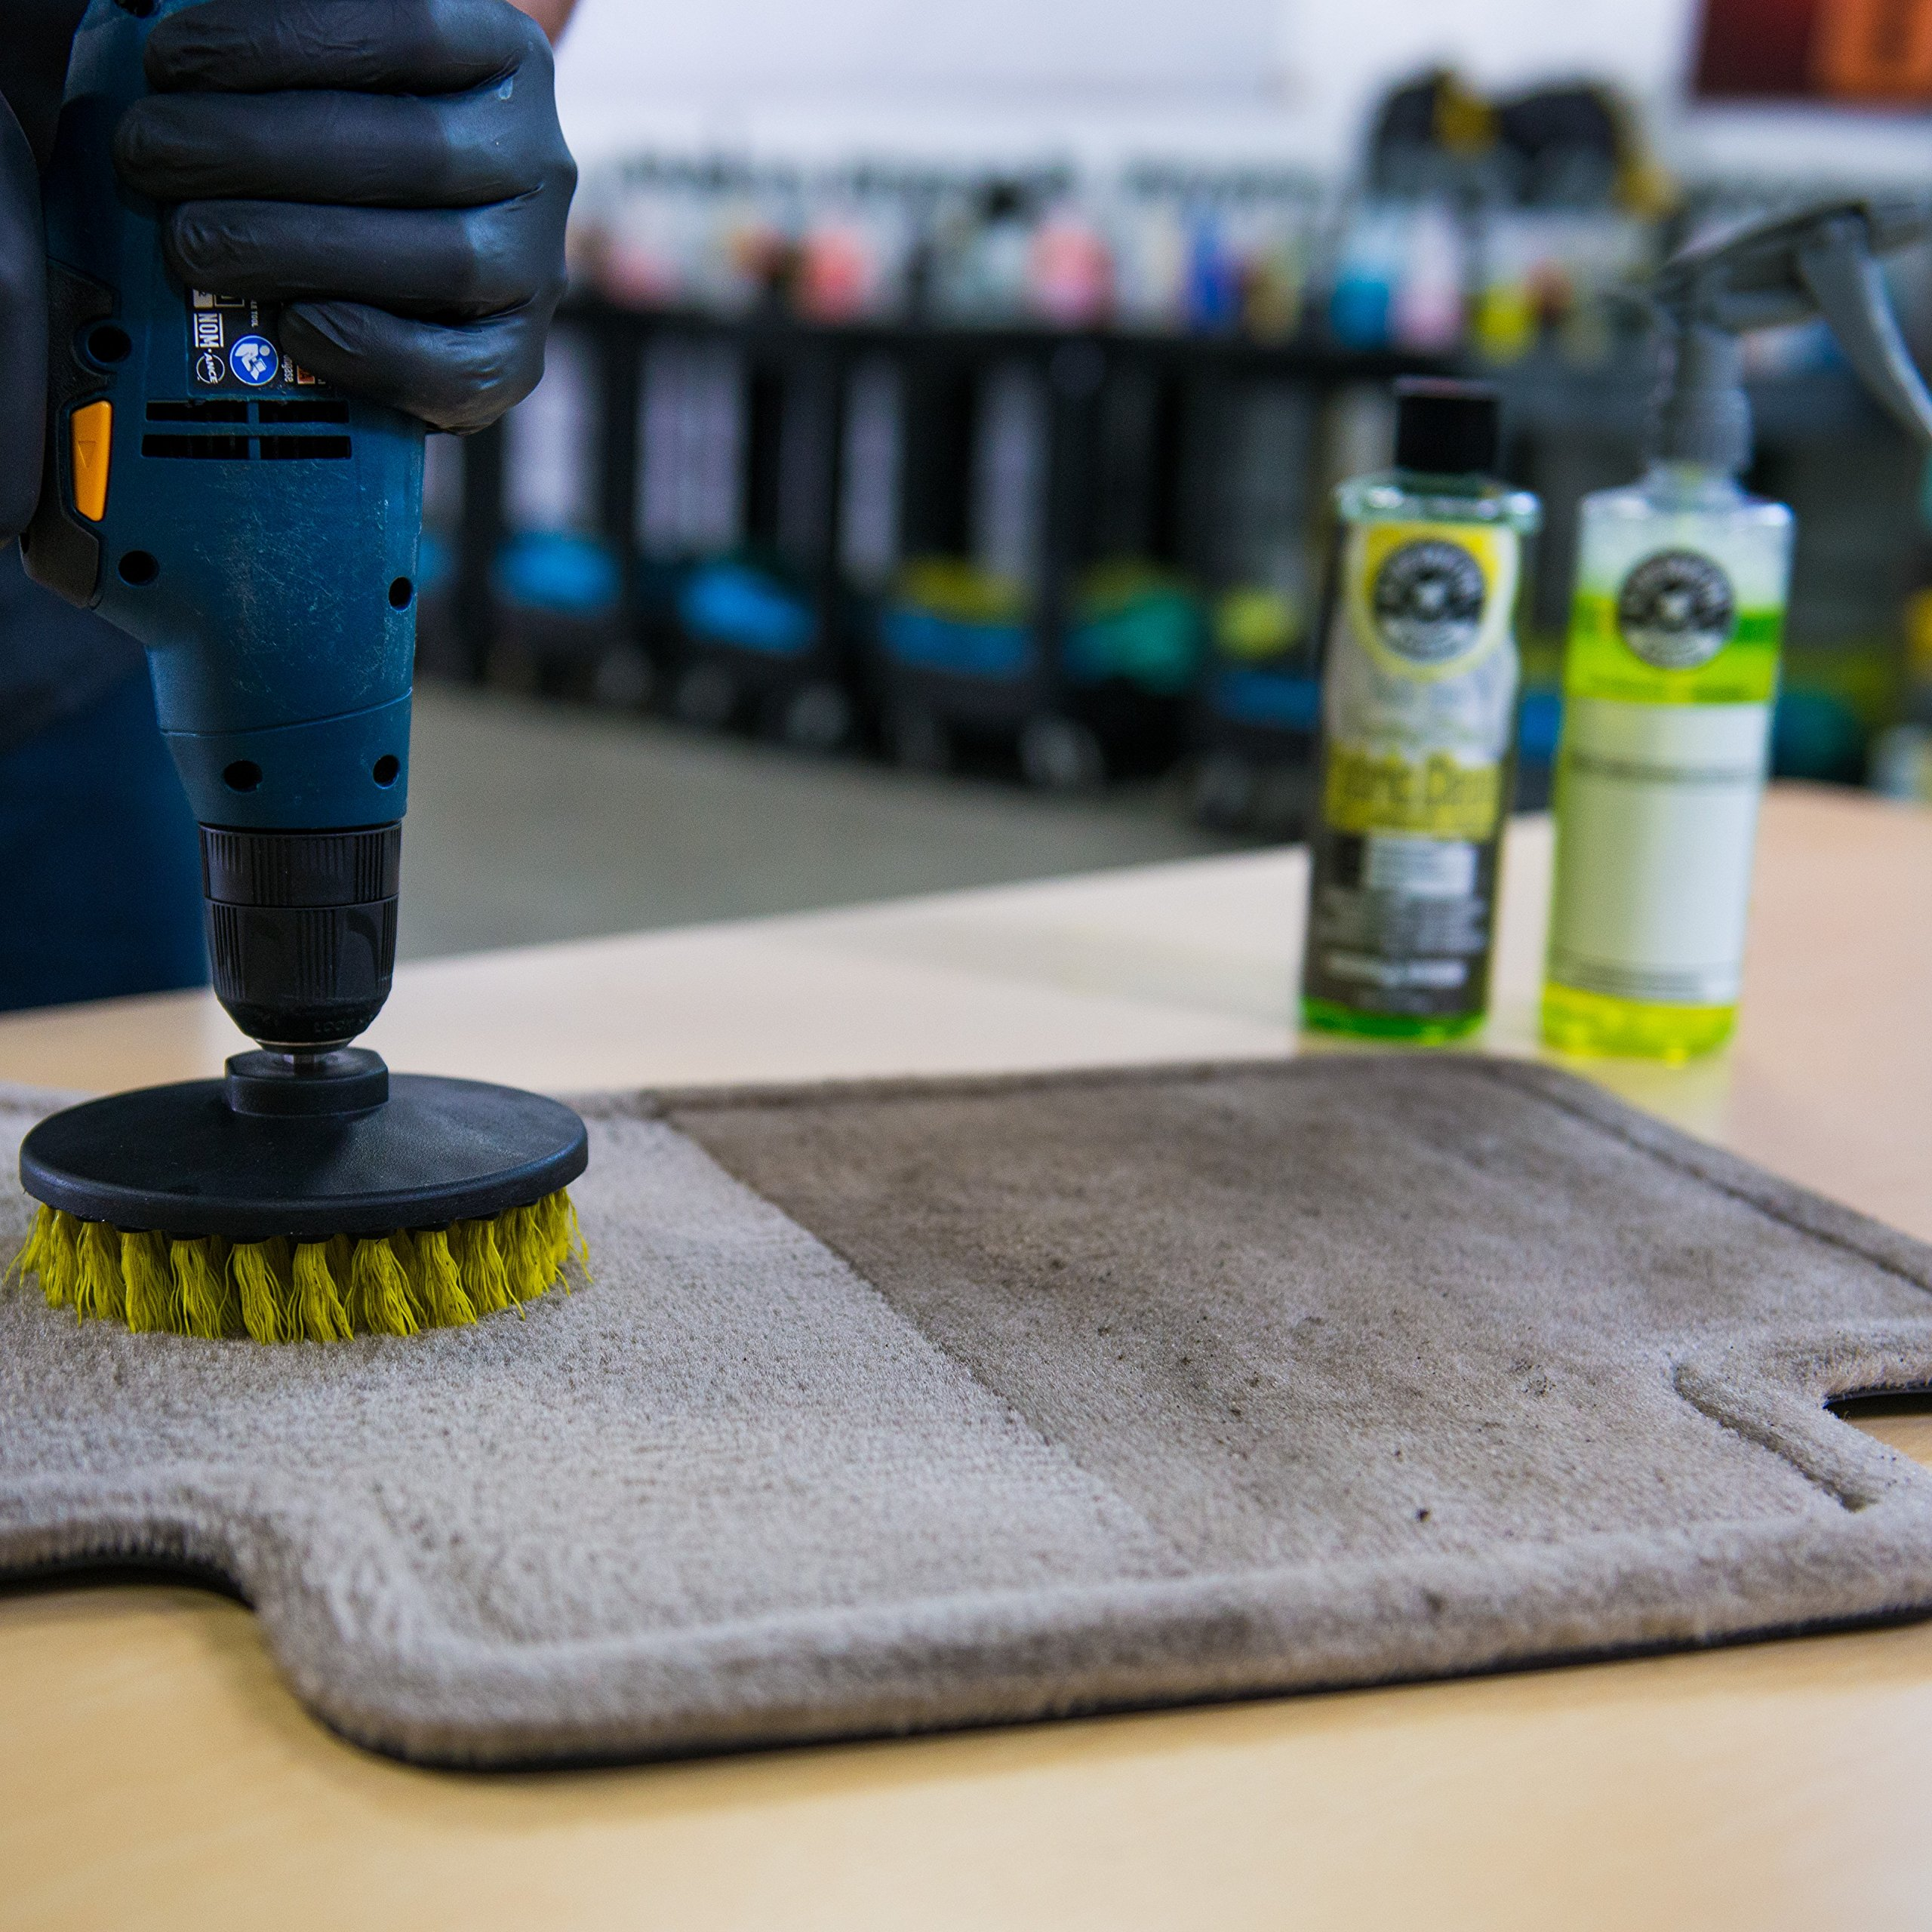 Chemical Guys HOL315 Carpet and Upholstery Cleaning Kit (3 Items), 16. Fluid_Ounces by Chemical Guys (Image #4)